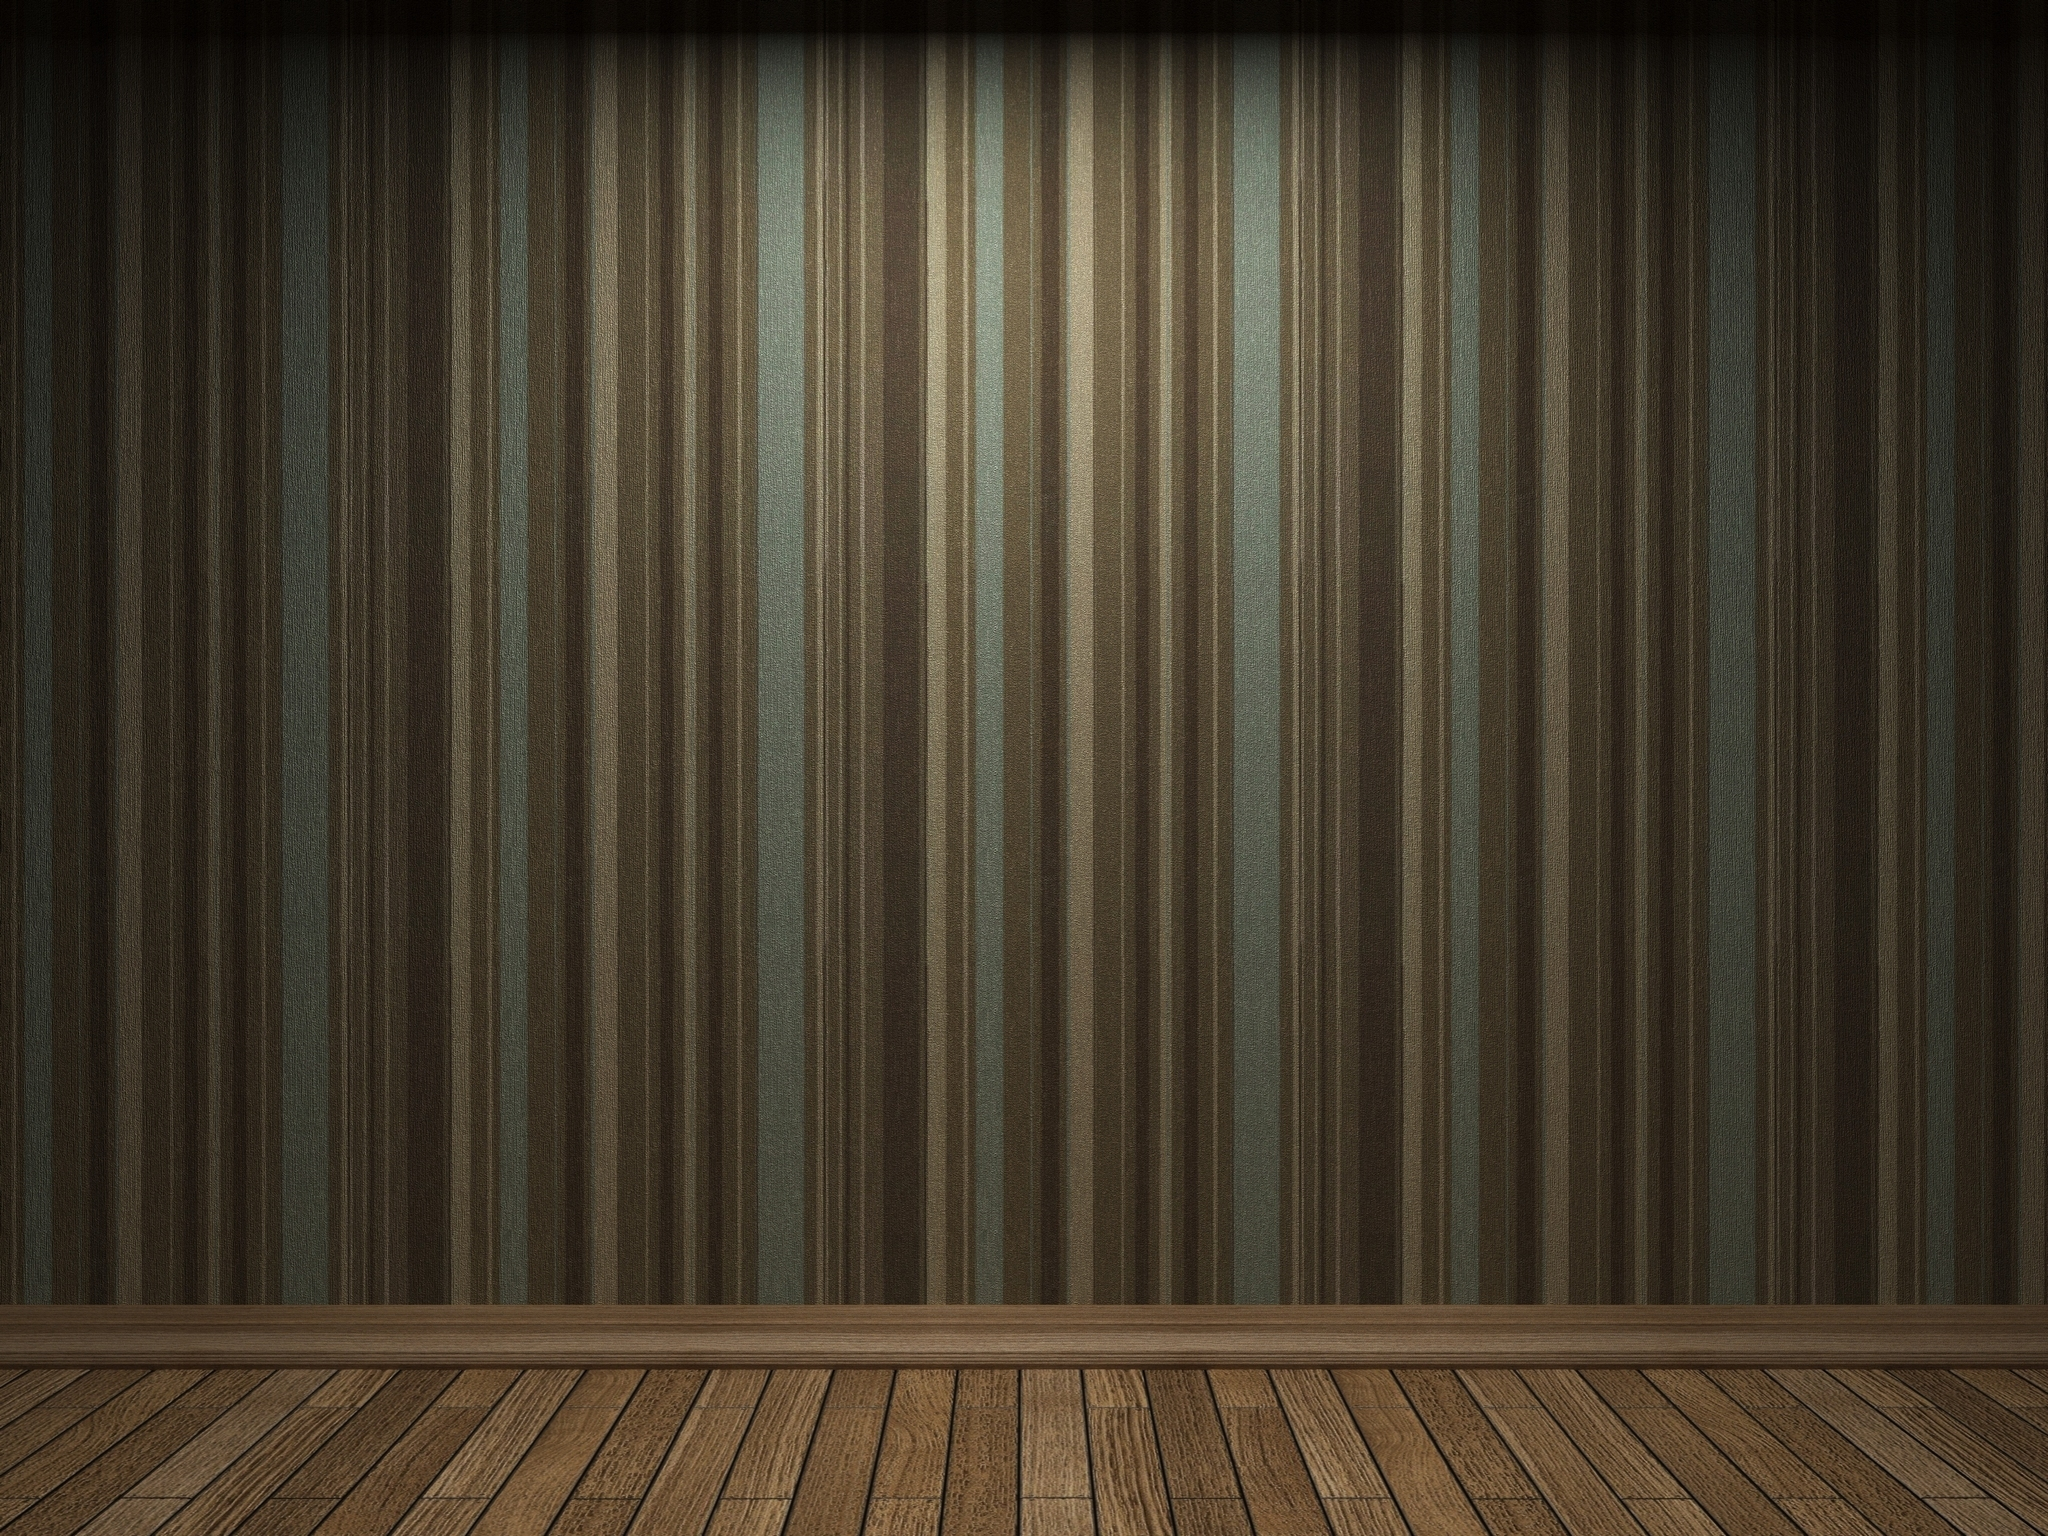 wallpapers for walls - photo #23